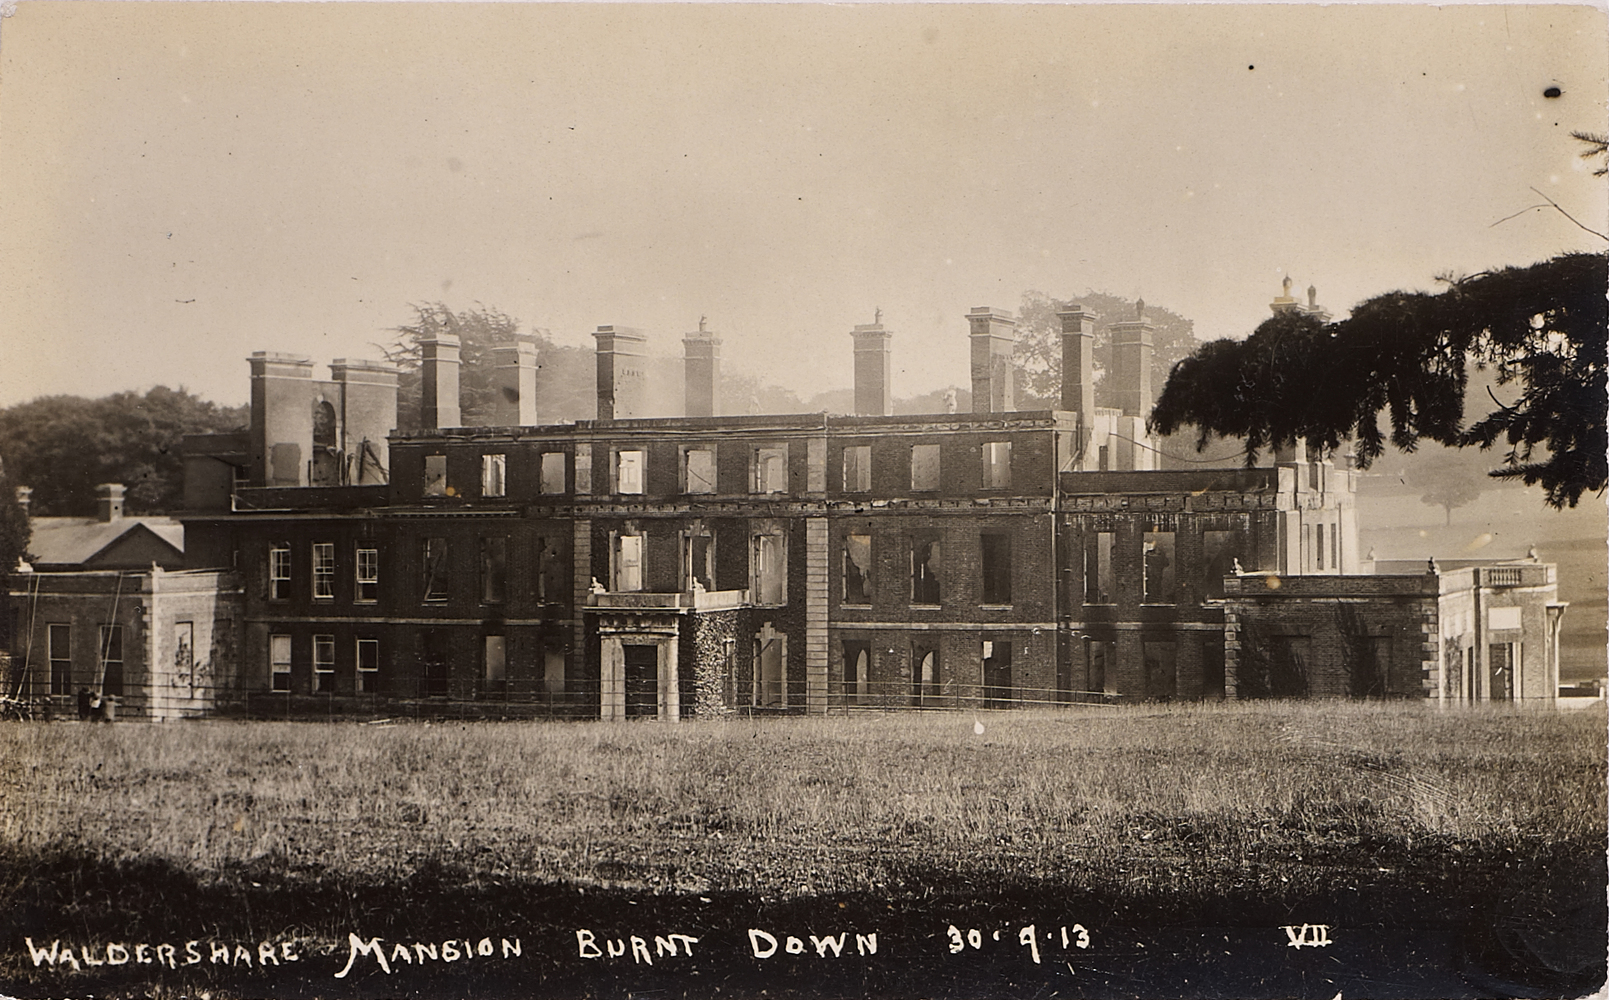 Postcard, Waldershare Mansion burnt down. 30 September 1913